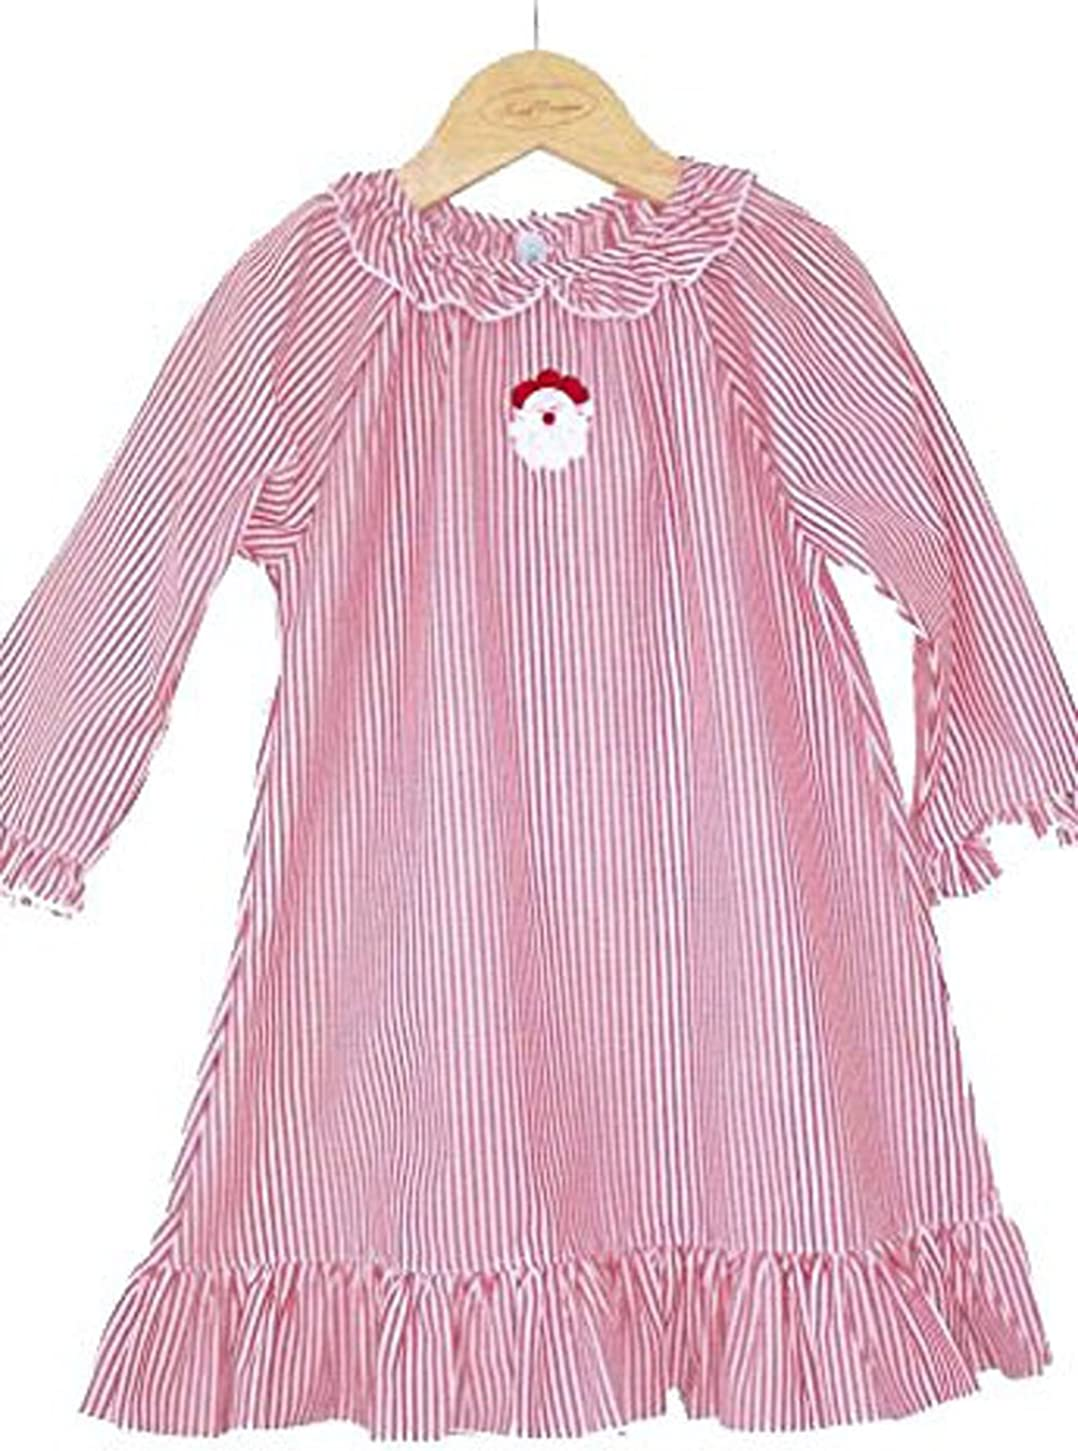 Christmas Night Gown with Santa Embroidery, Red and White Stripe